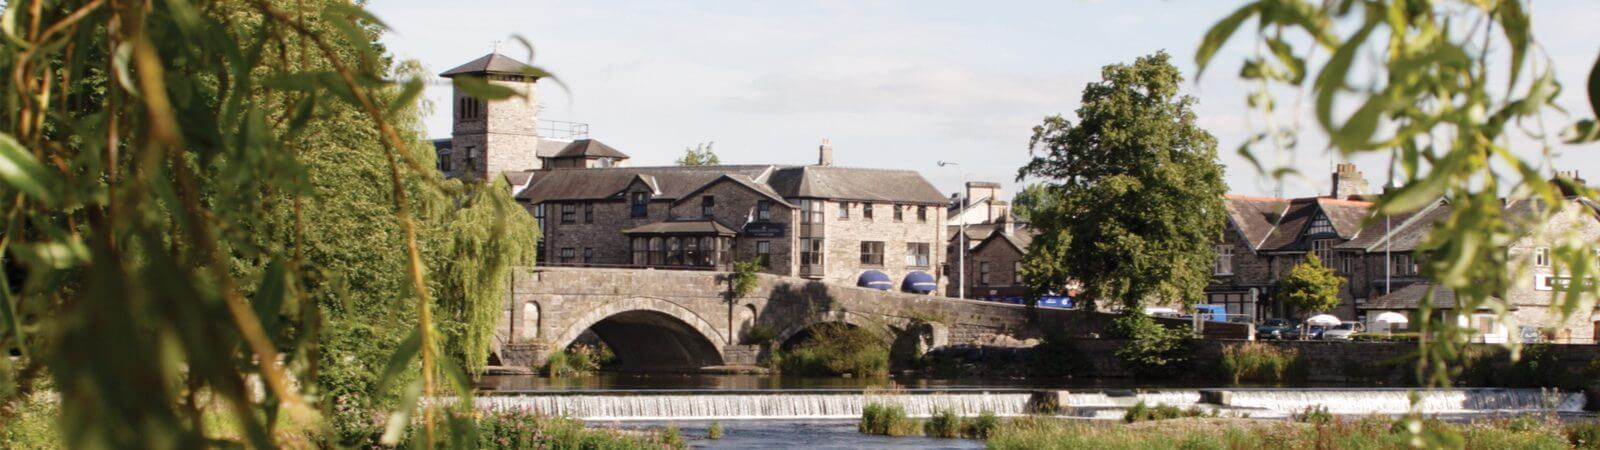 Carus Green, Kendal